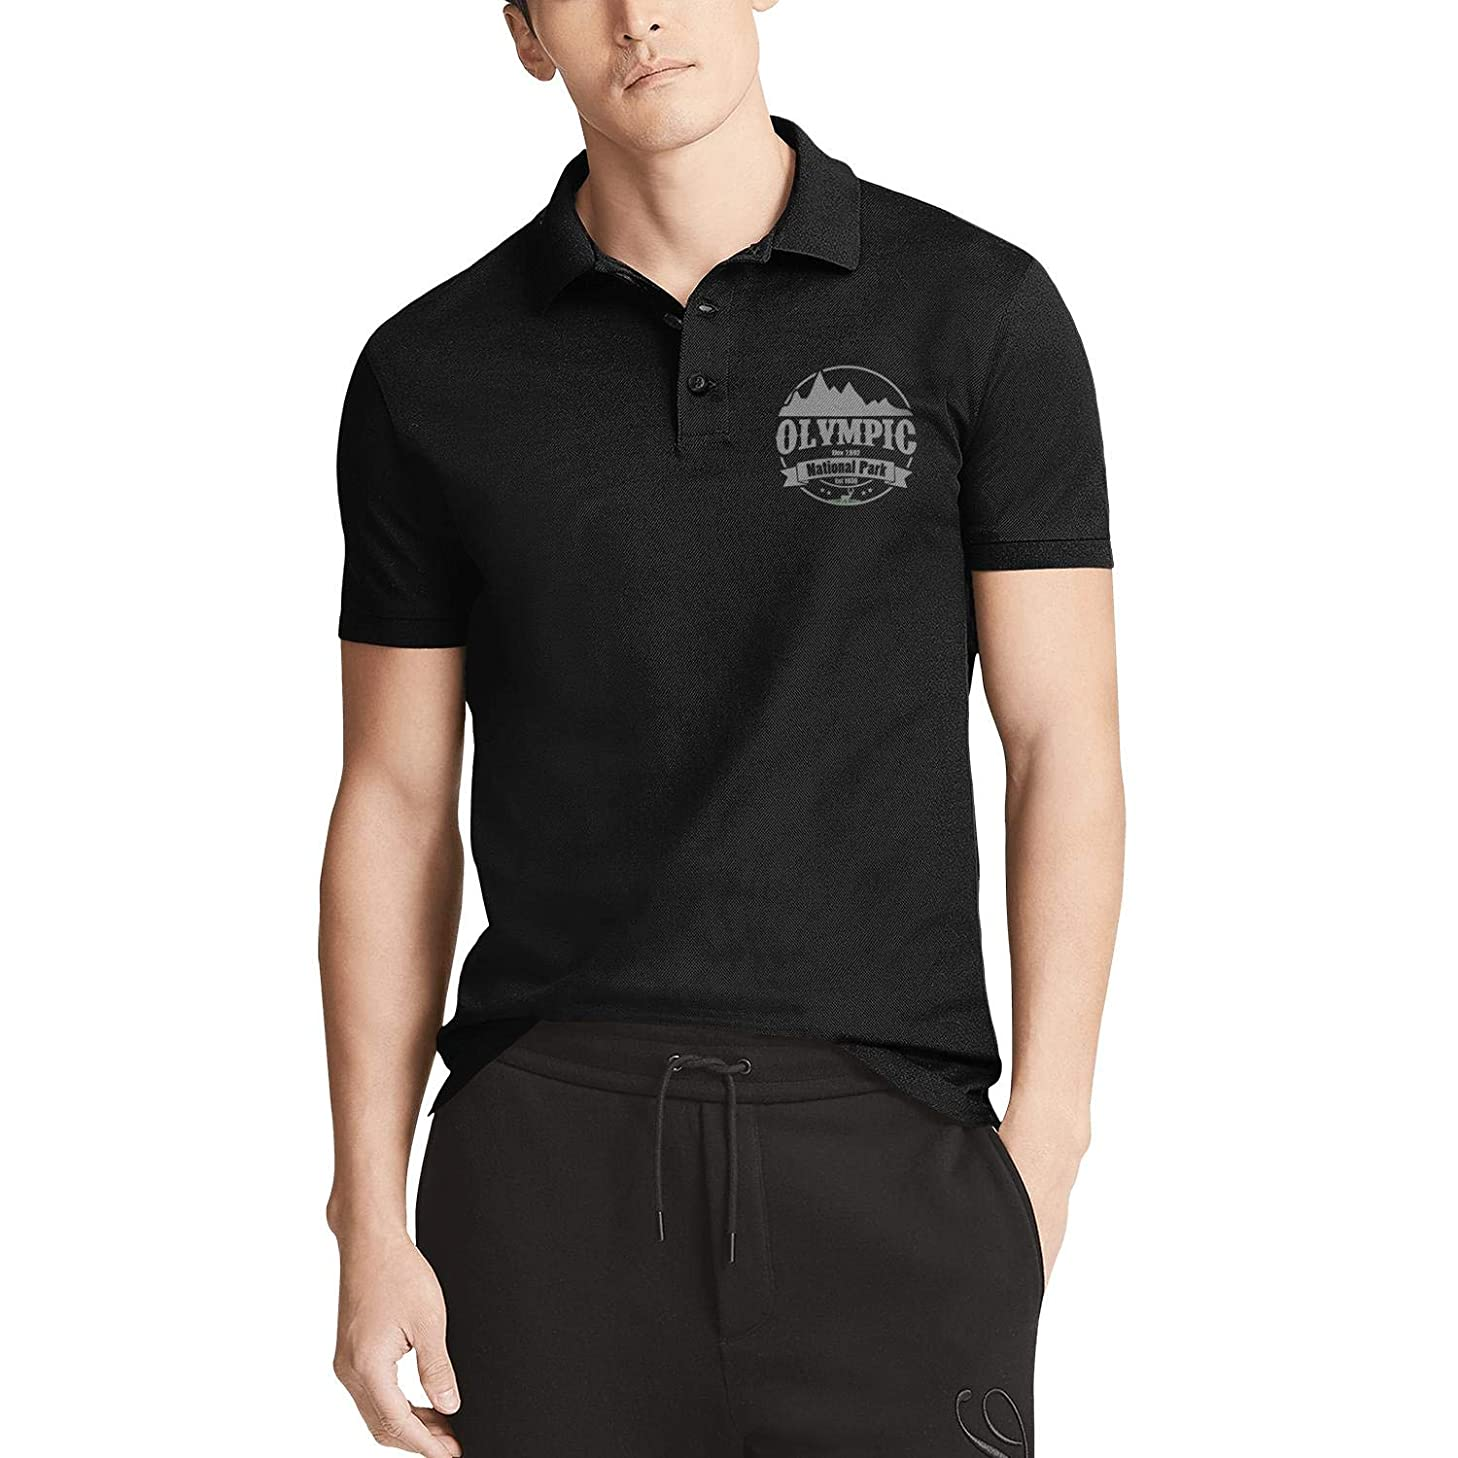 Olympic National Park Mens Cotton Golf Vintage Polo Shirts